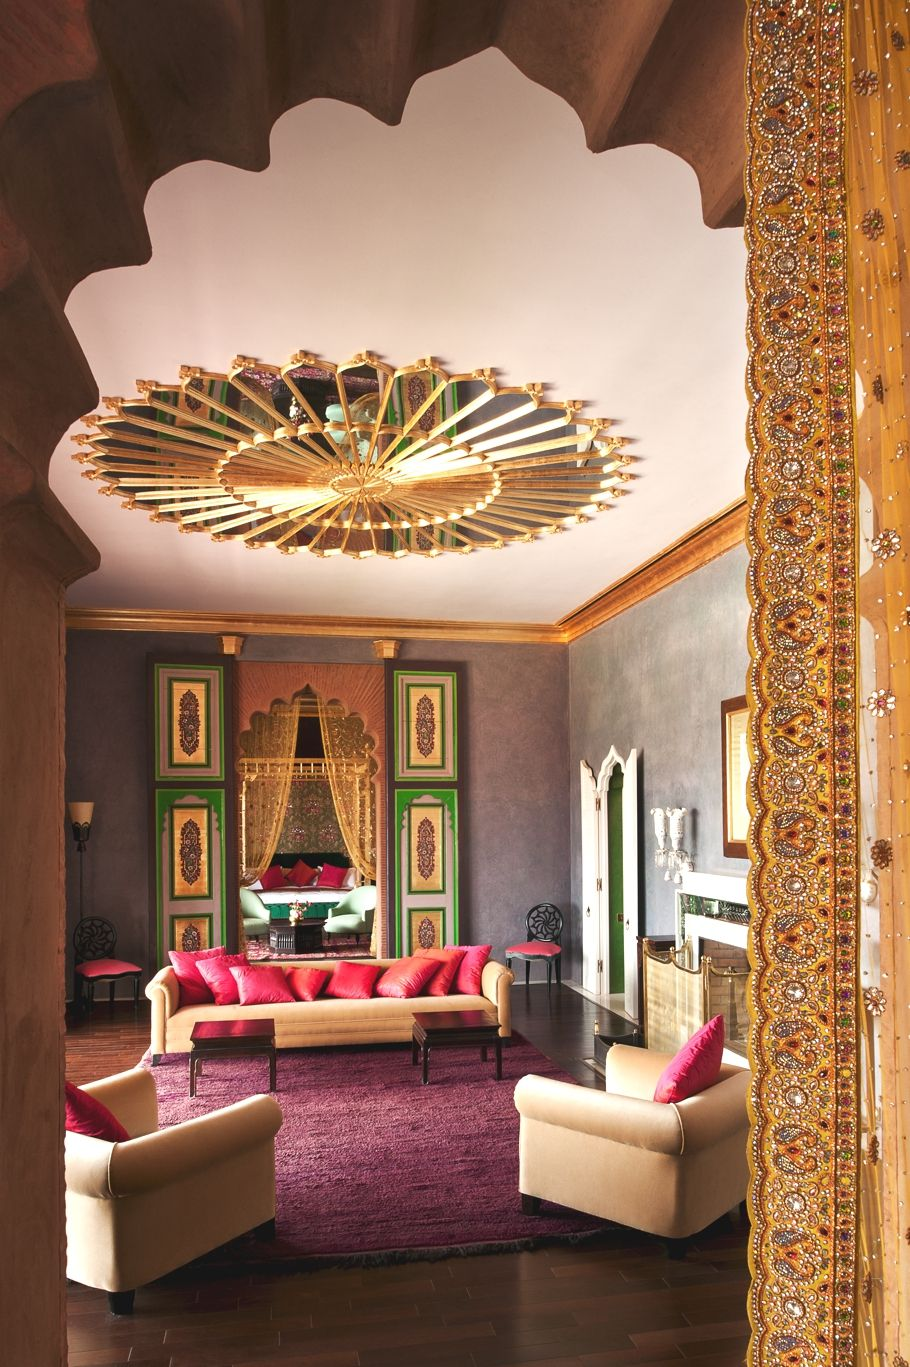 taj palace luxury hotel in marrakech | book inspiration